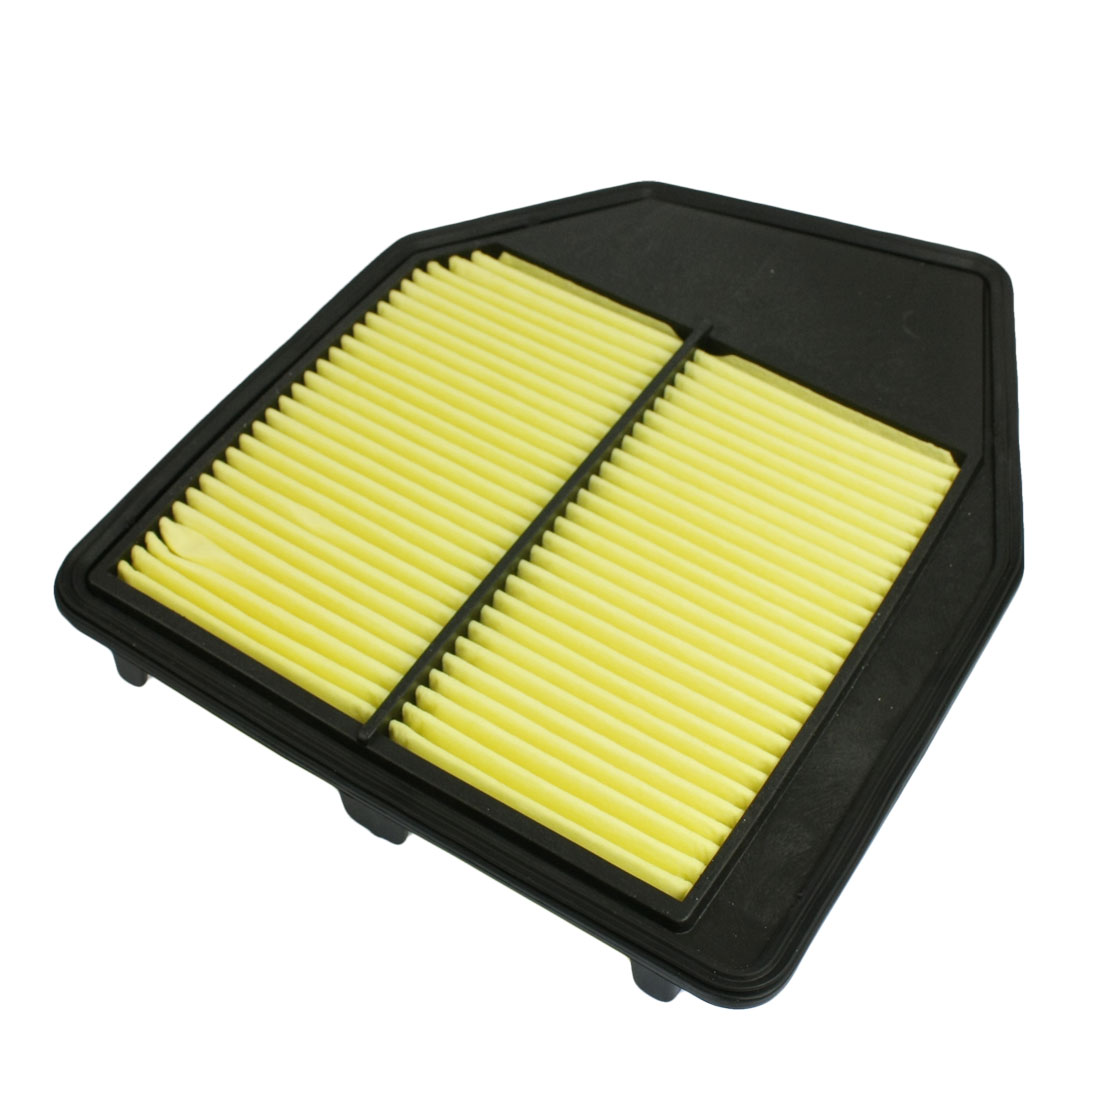 Auto Truck Car Engine Cleaner Air Filter Black Yellow New